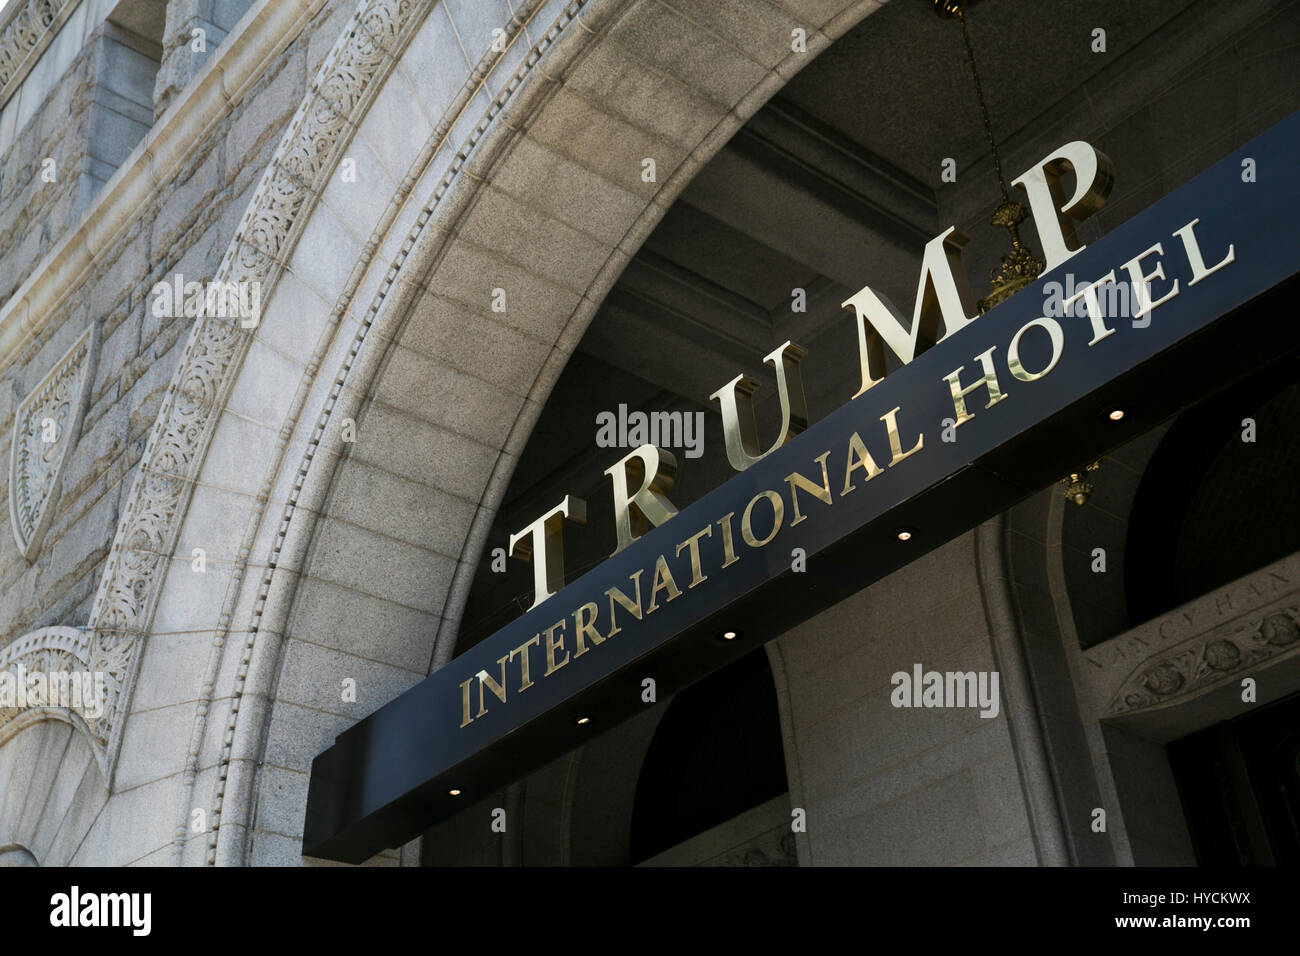 A logo sign outside of the Trump International Hotel in the Old Post Office building in downtown Washington, D.C., - Stock Image